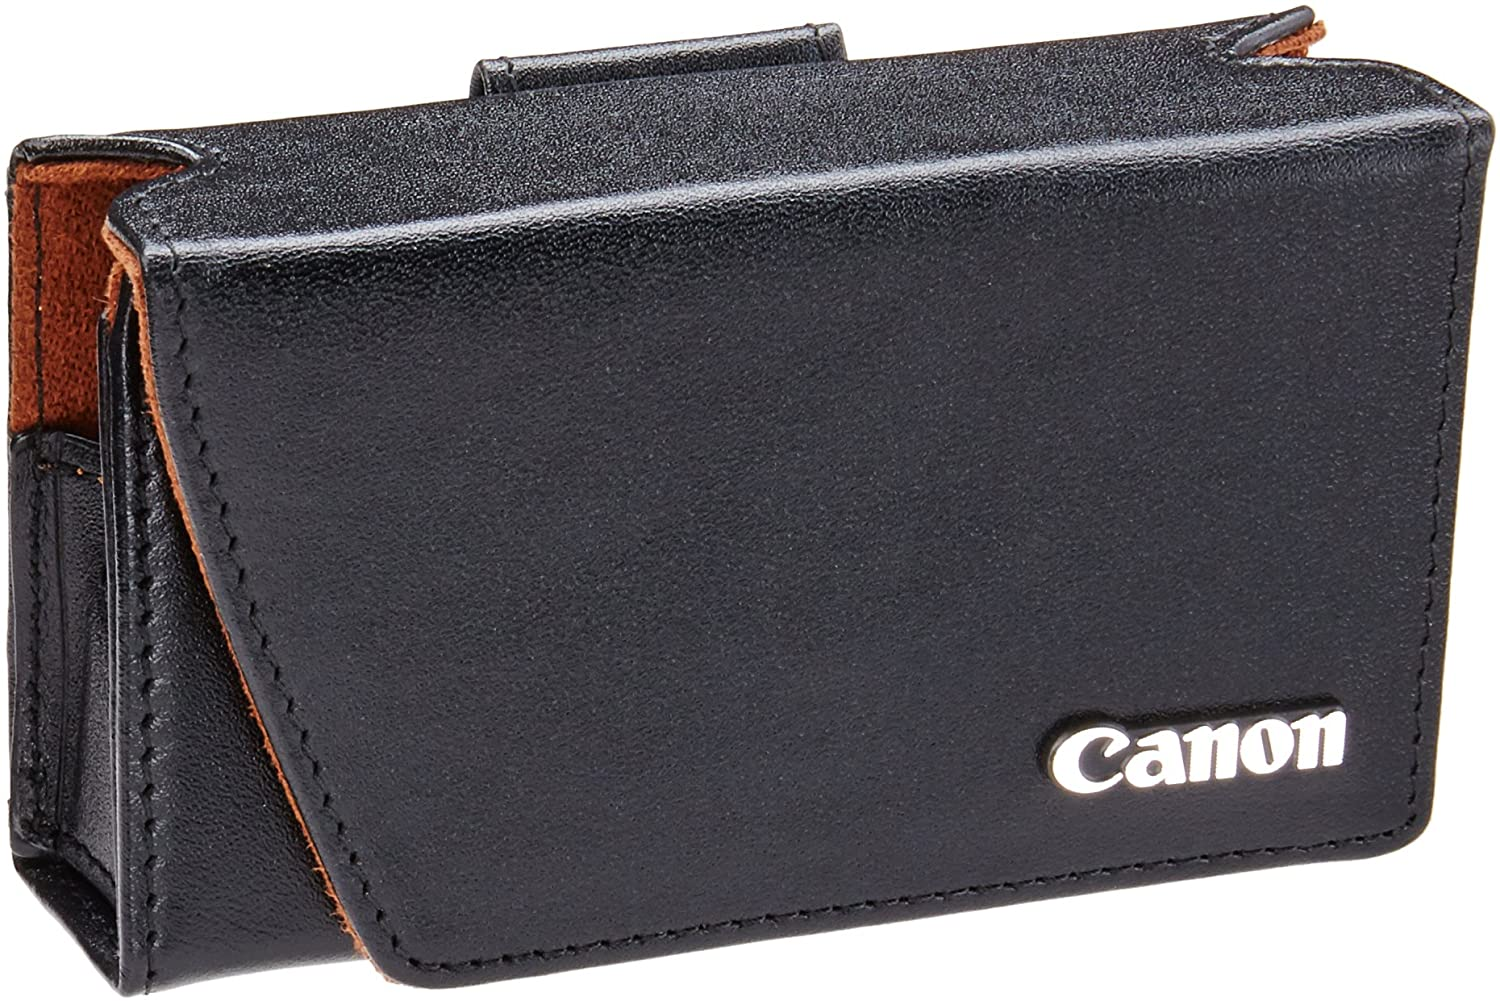 PSC-900 Deluxe Leather Case